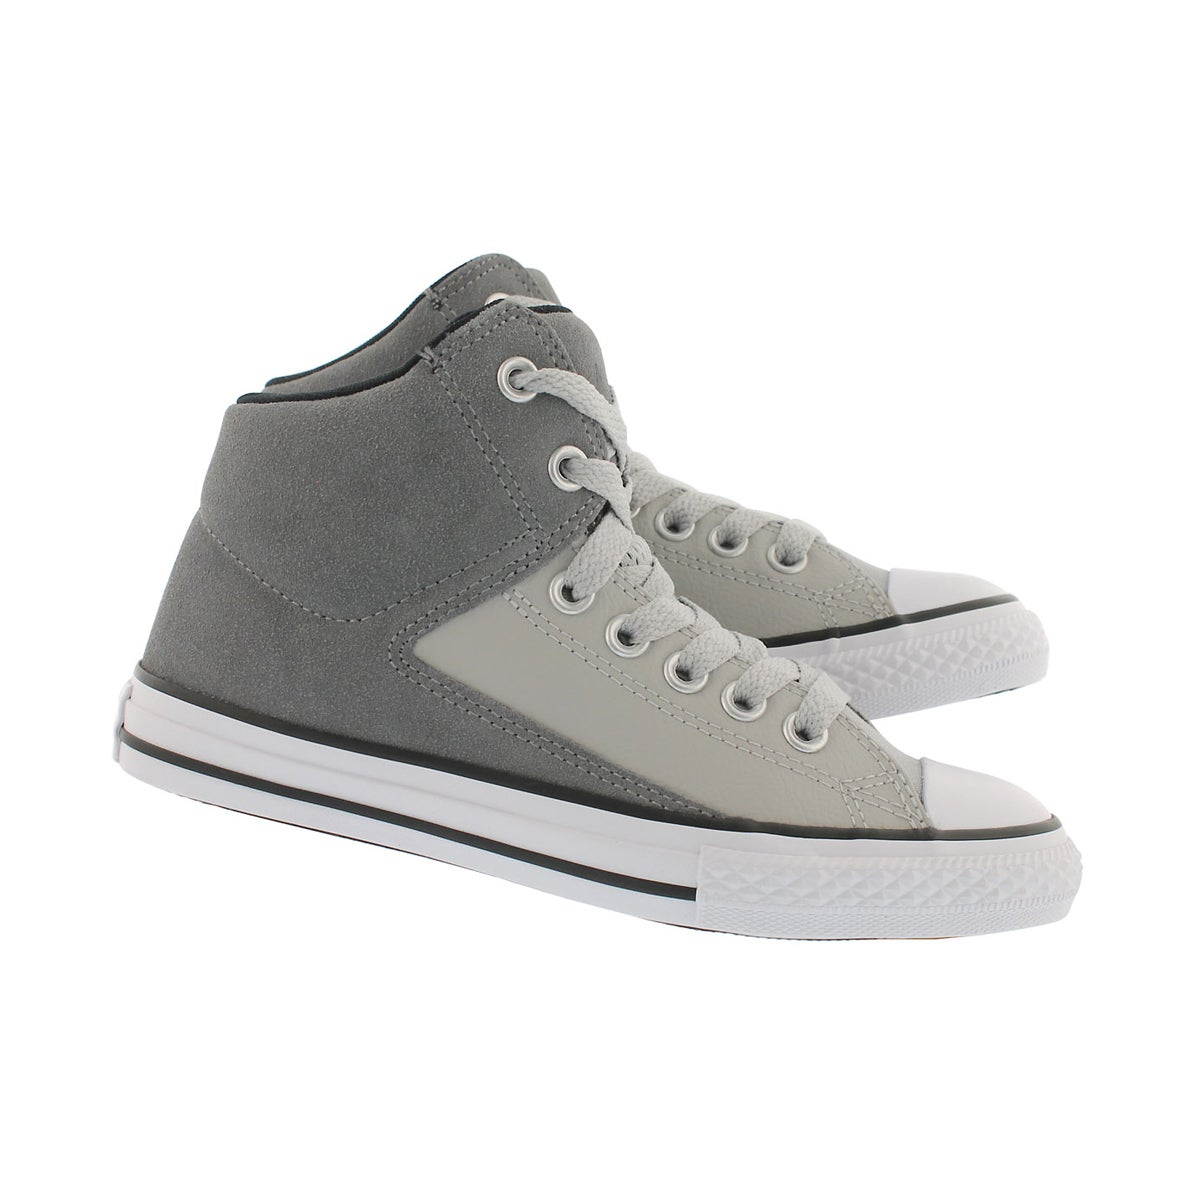 Bys CTAS HighStreet grey hi top snkr